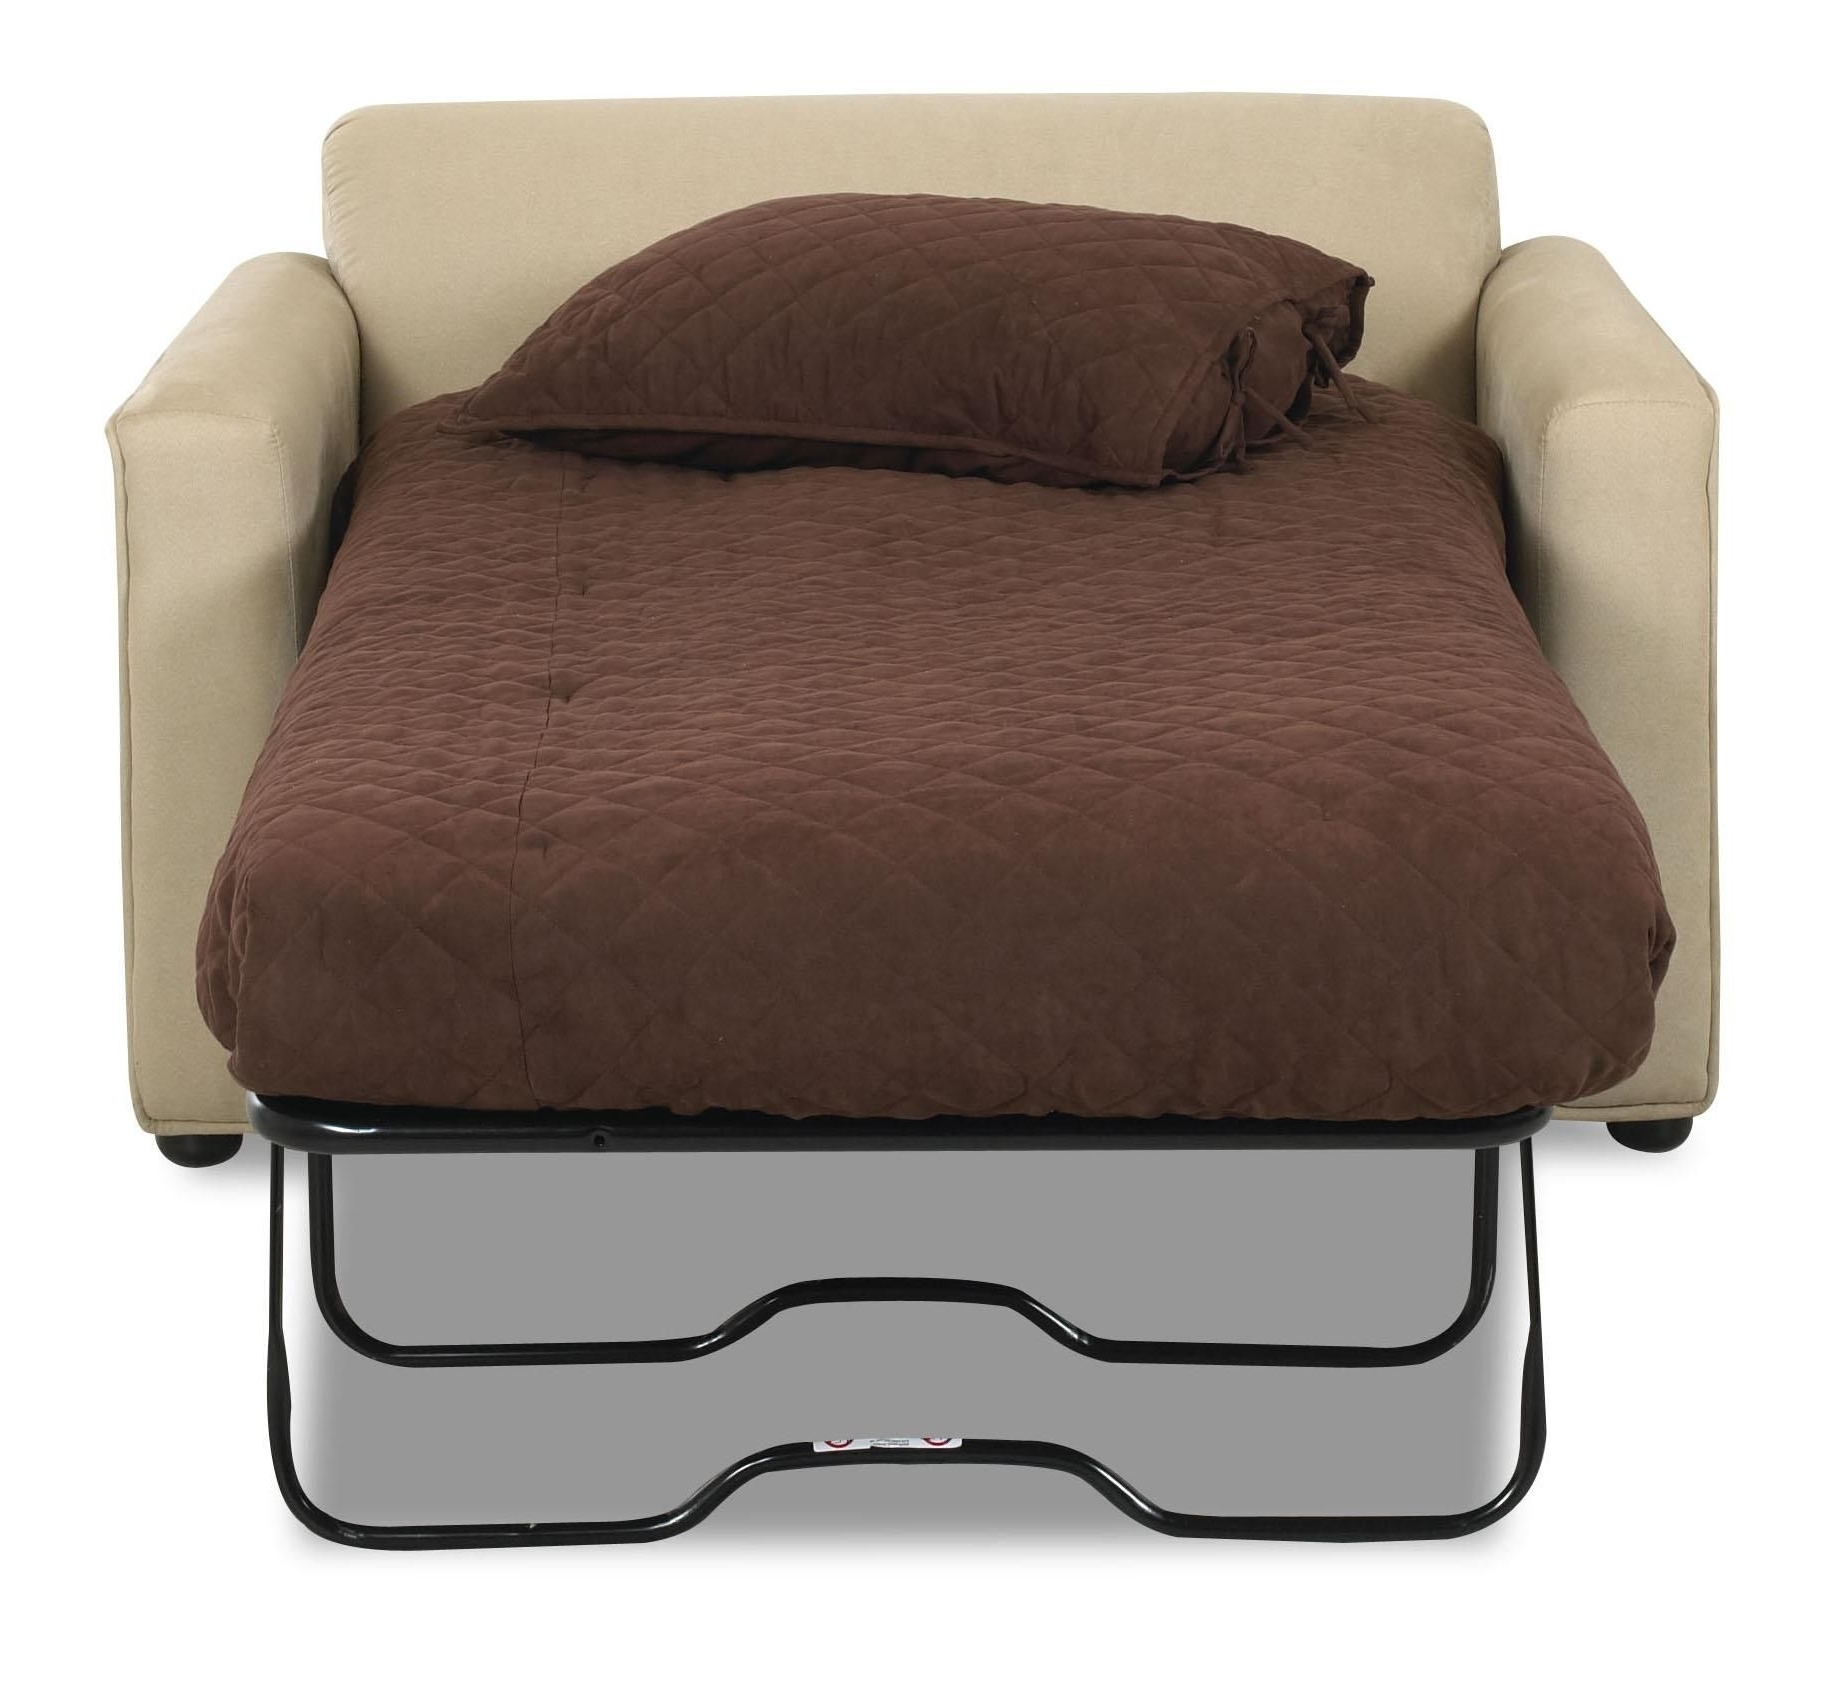 Best And Newest Chair That Folds Out Into A Twin Bed (View 3 of 20)